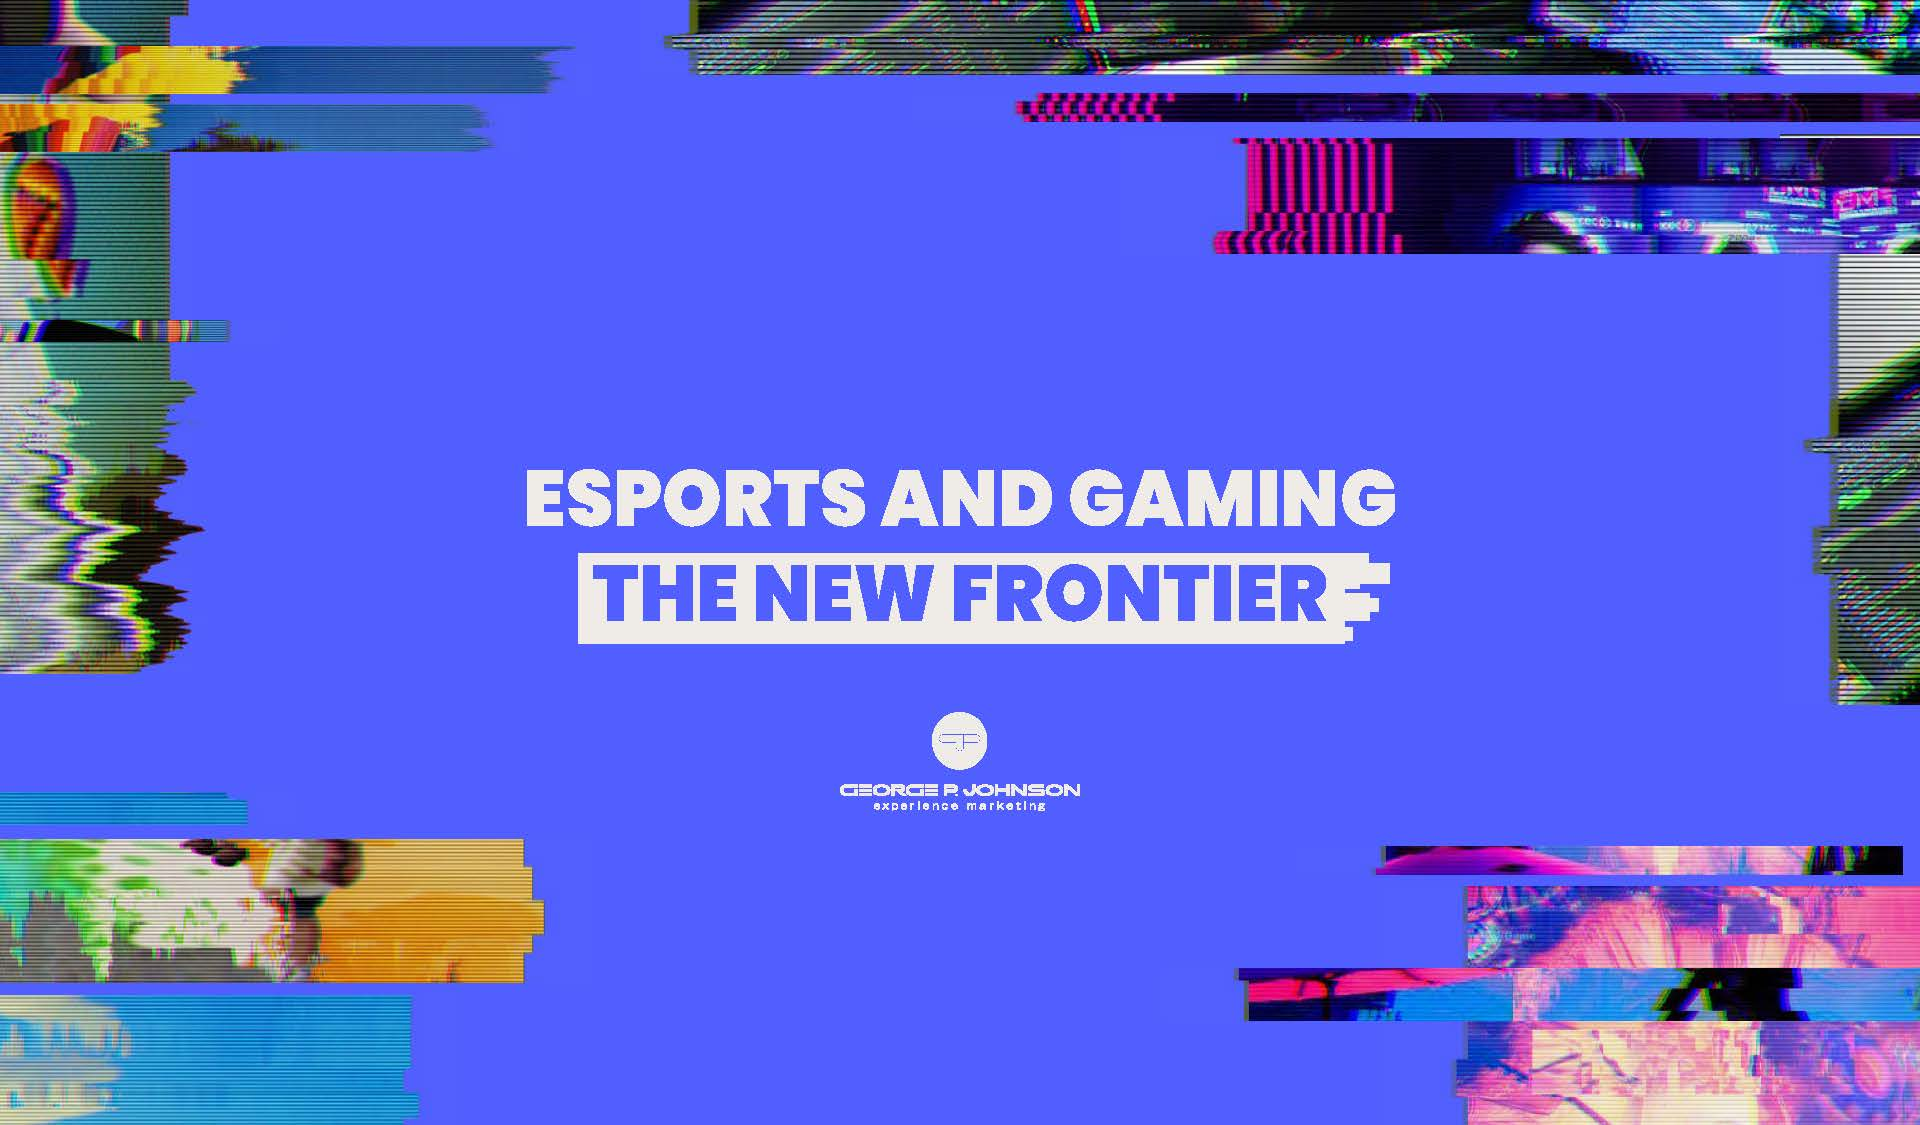 ESPORTS AND GAMING THE NEW FRONTIER